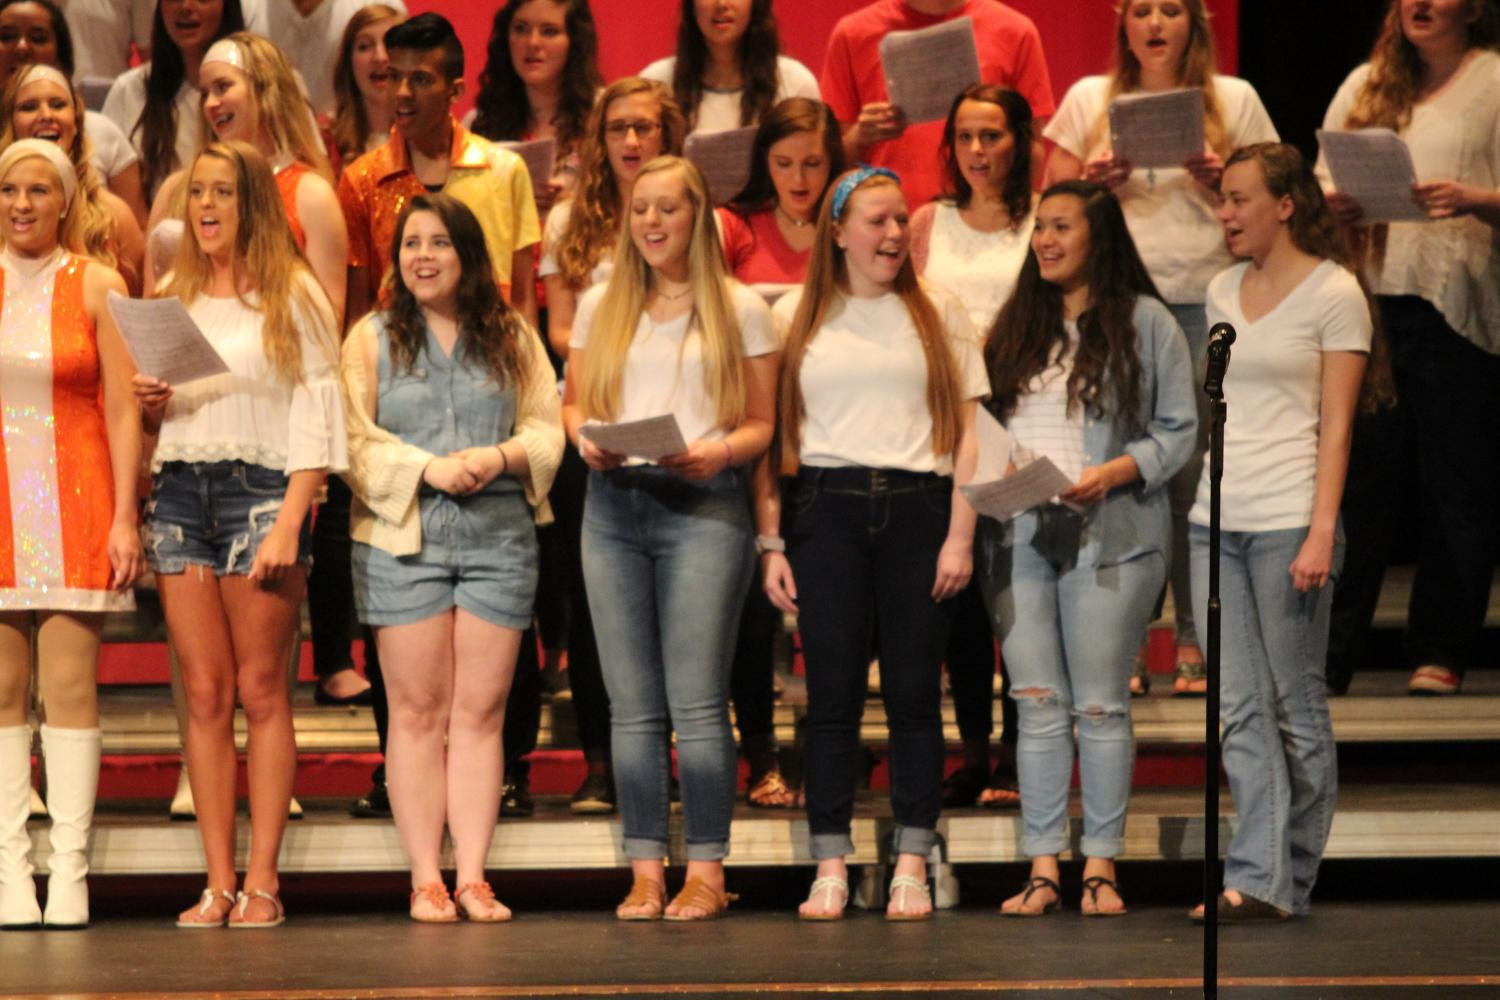 PERFECT+HARMONY%3A+Seniors+from+all+choirs+perform+their+traditional+senior+song+to+end+the+concert.+The+group+performed+%E2%80%9CBreak+Away%E2%80%9D+by+Kelly+Clarkson.+